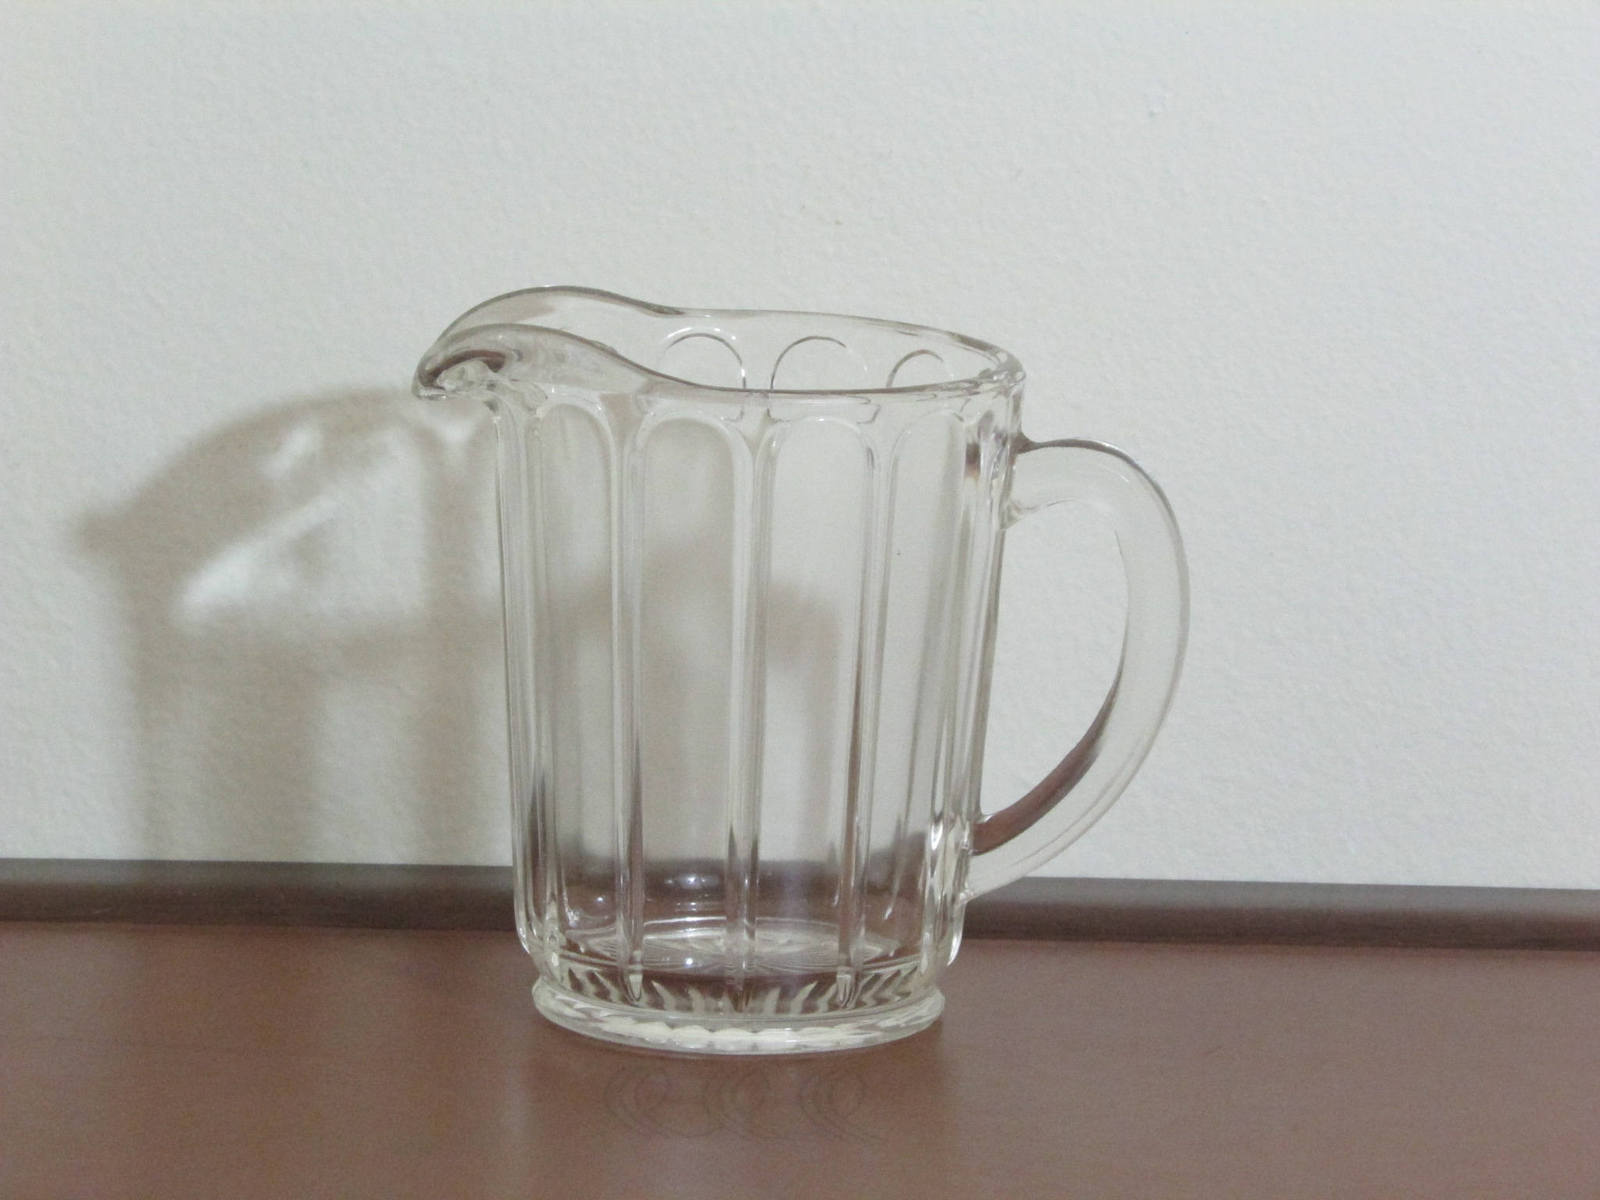 Primary image for Vintage Small Hazel Atlas Clear Glass Pitcher 5 Inch Height